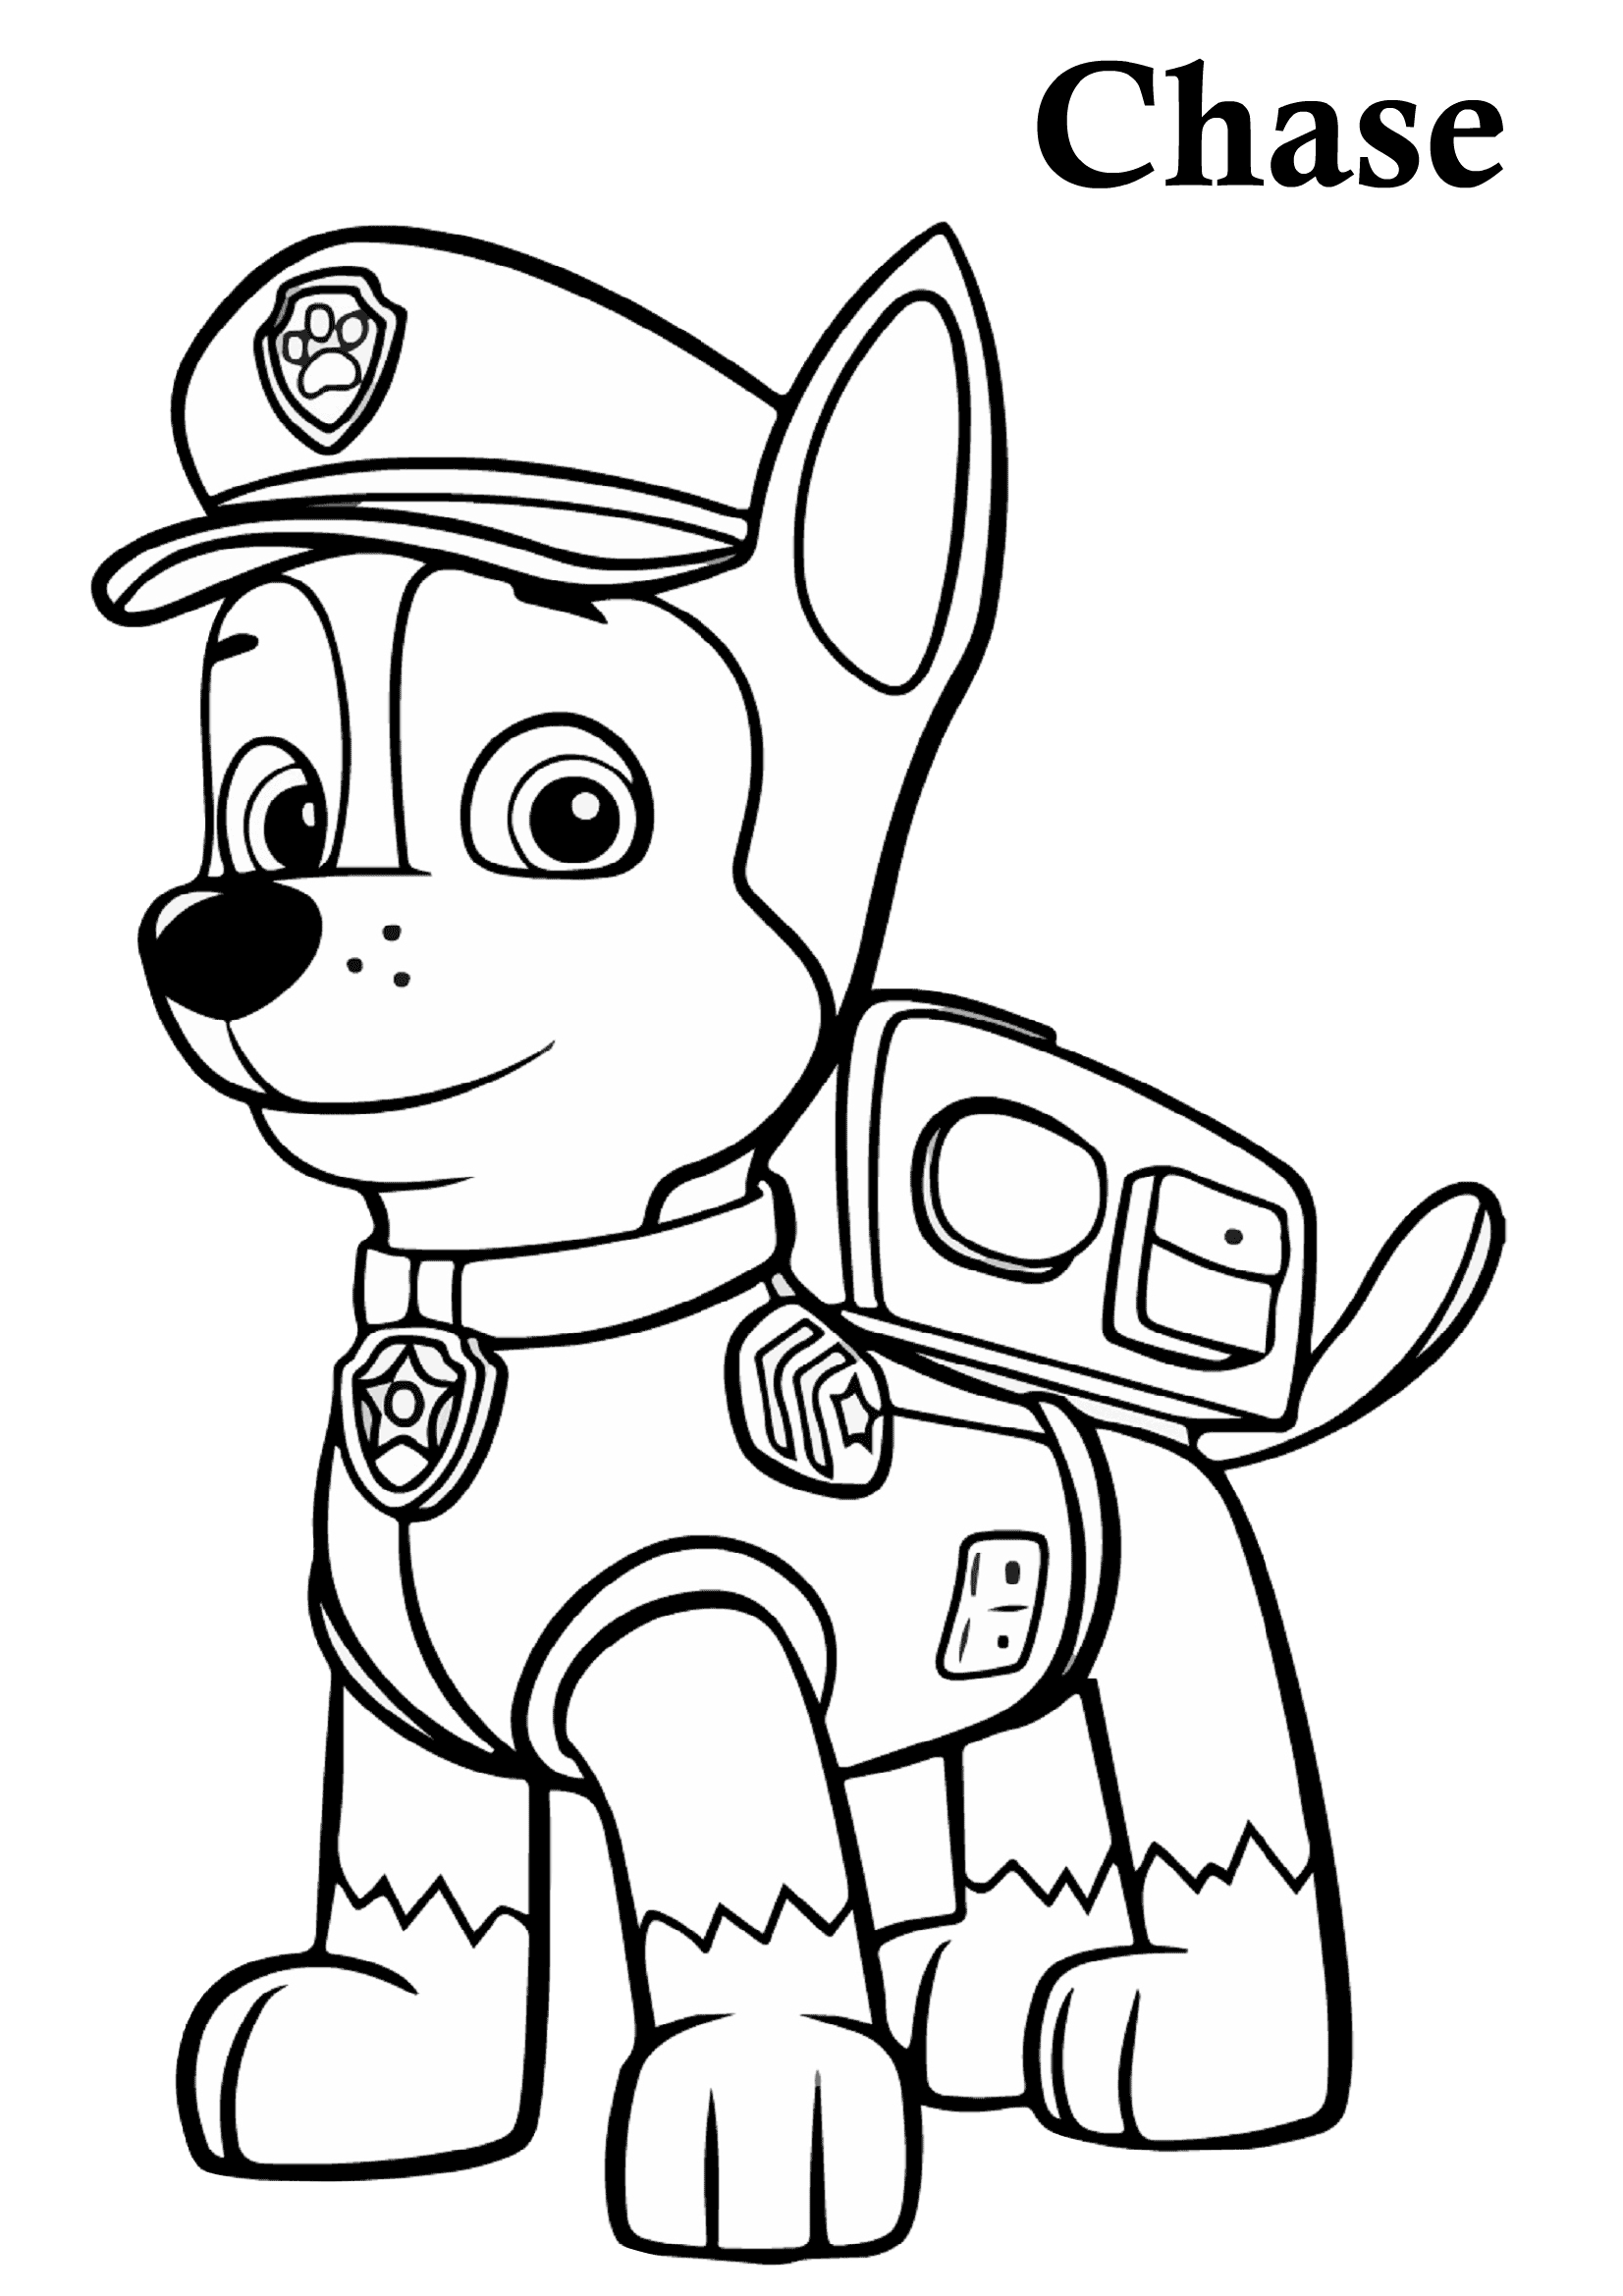 print paw patrol coloring pages paw patrol coloring pages 120 pictures free printable coloring pages patrol print paw